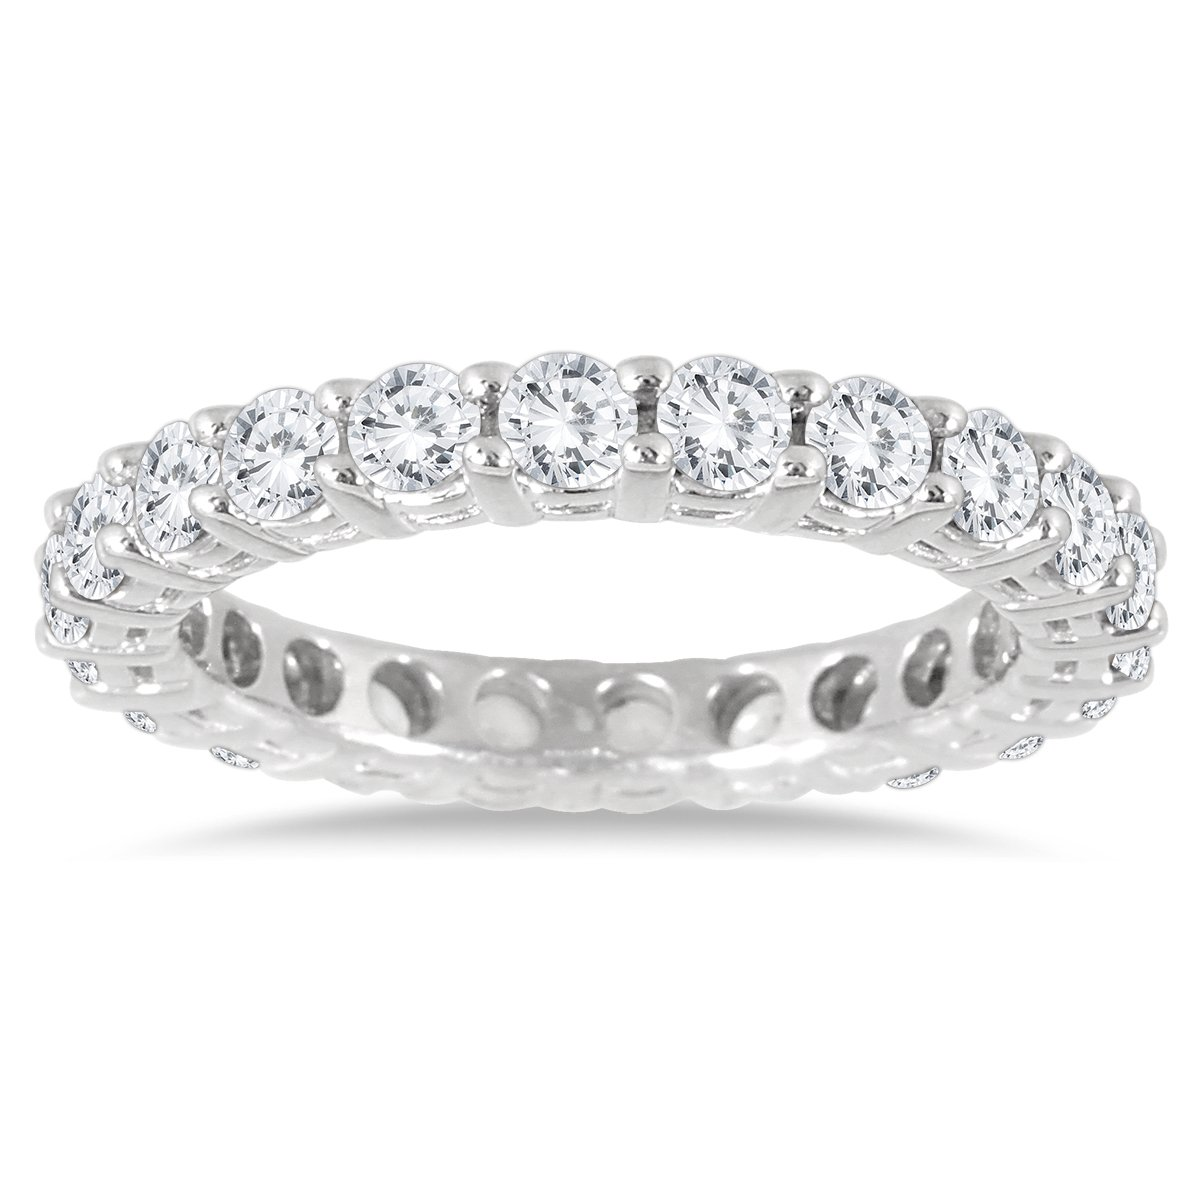 2 Carat TW AGS Certified 14K White Gold Diamond Eternity Band (K-L Color, I2-I3 Clarity) by Szul